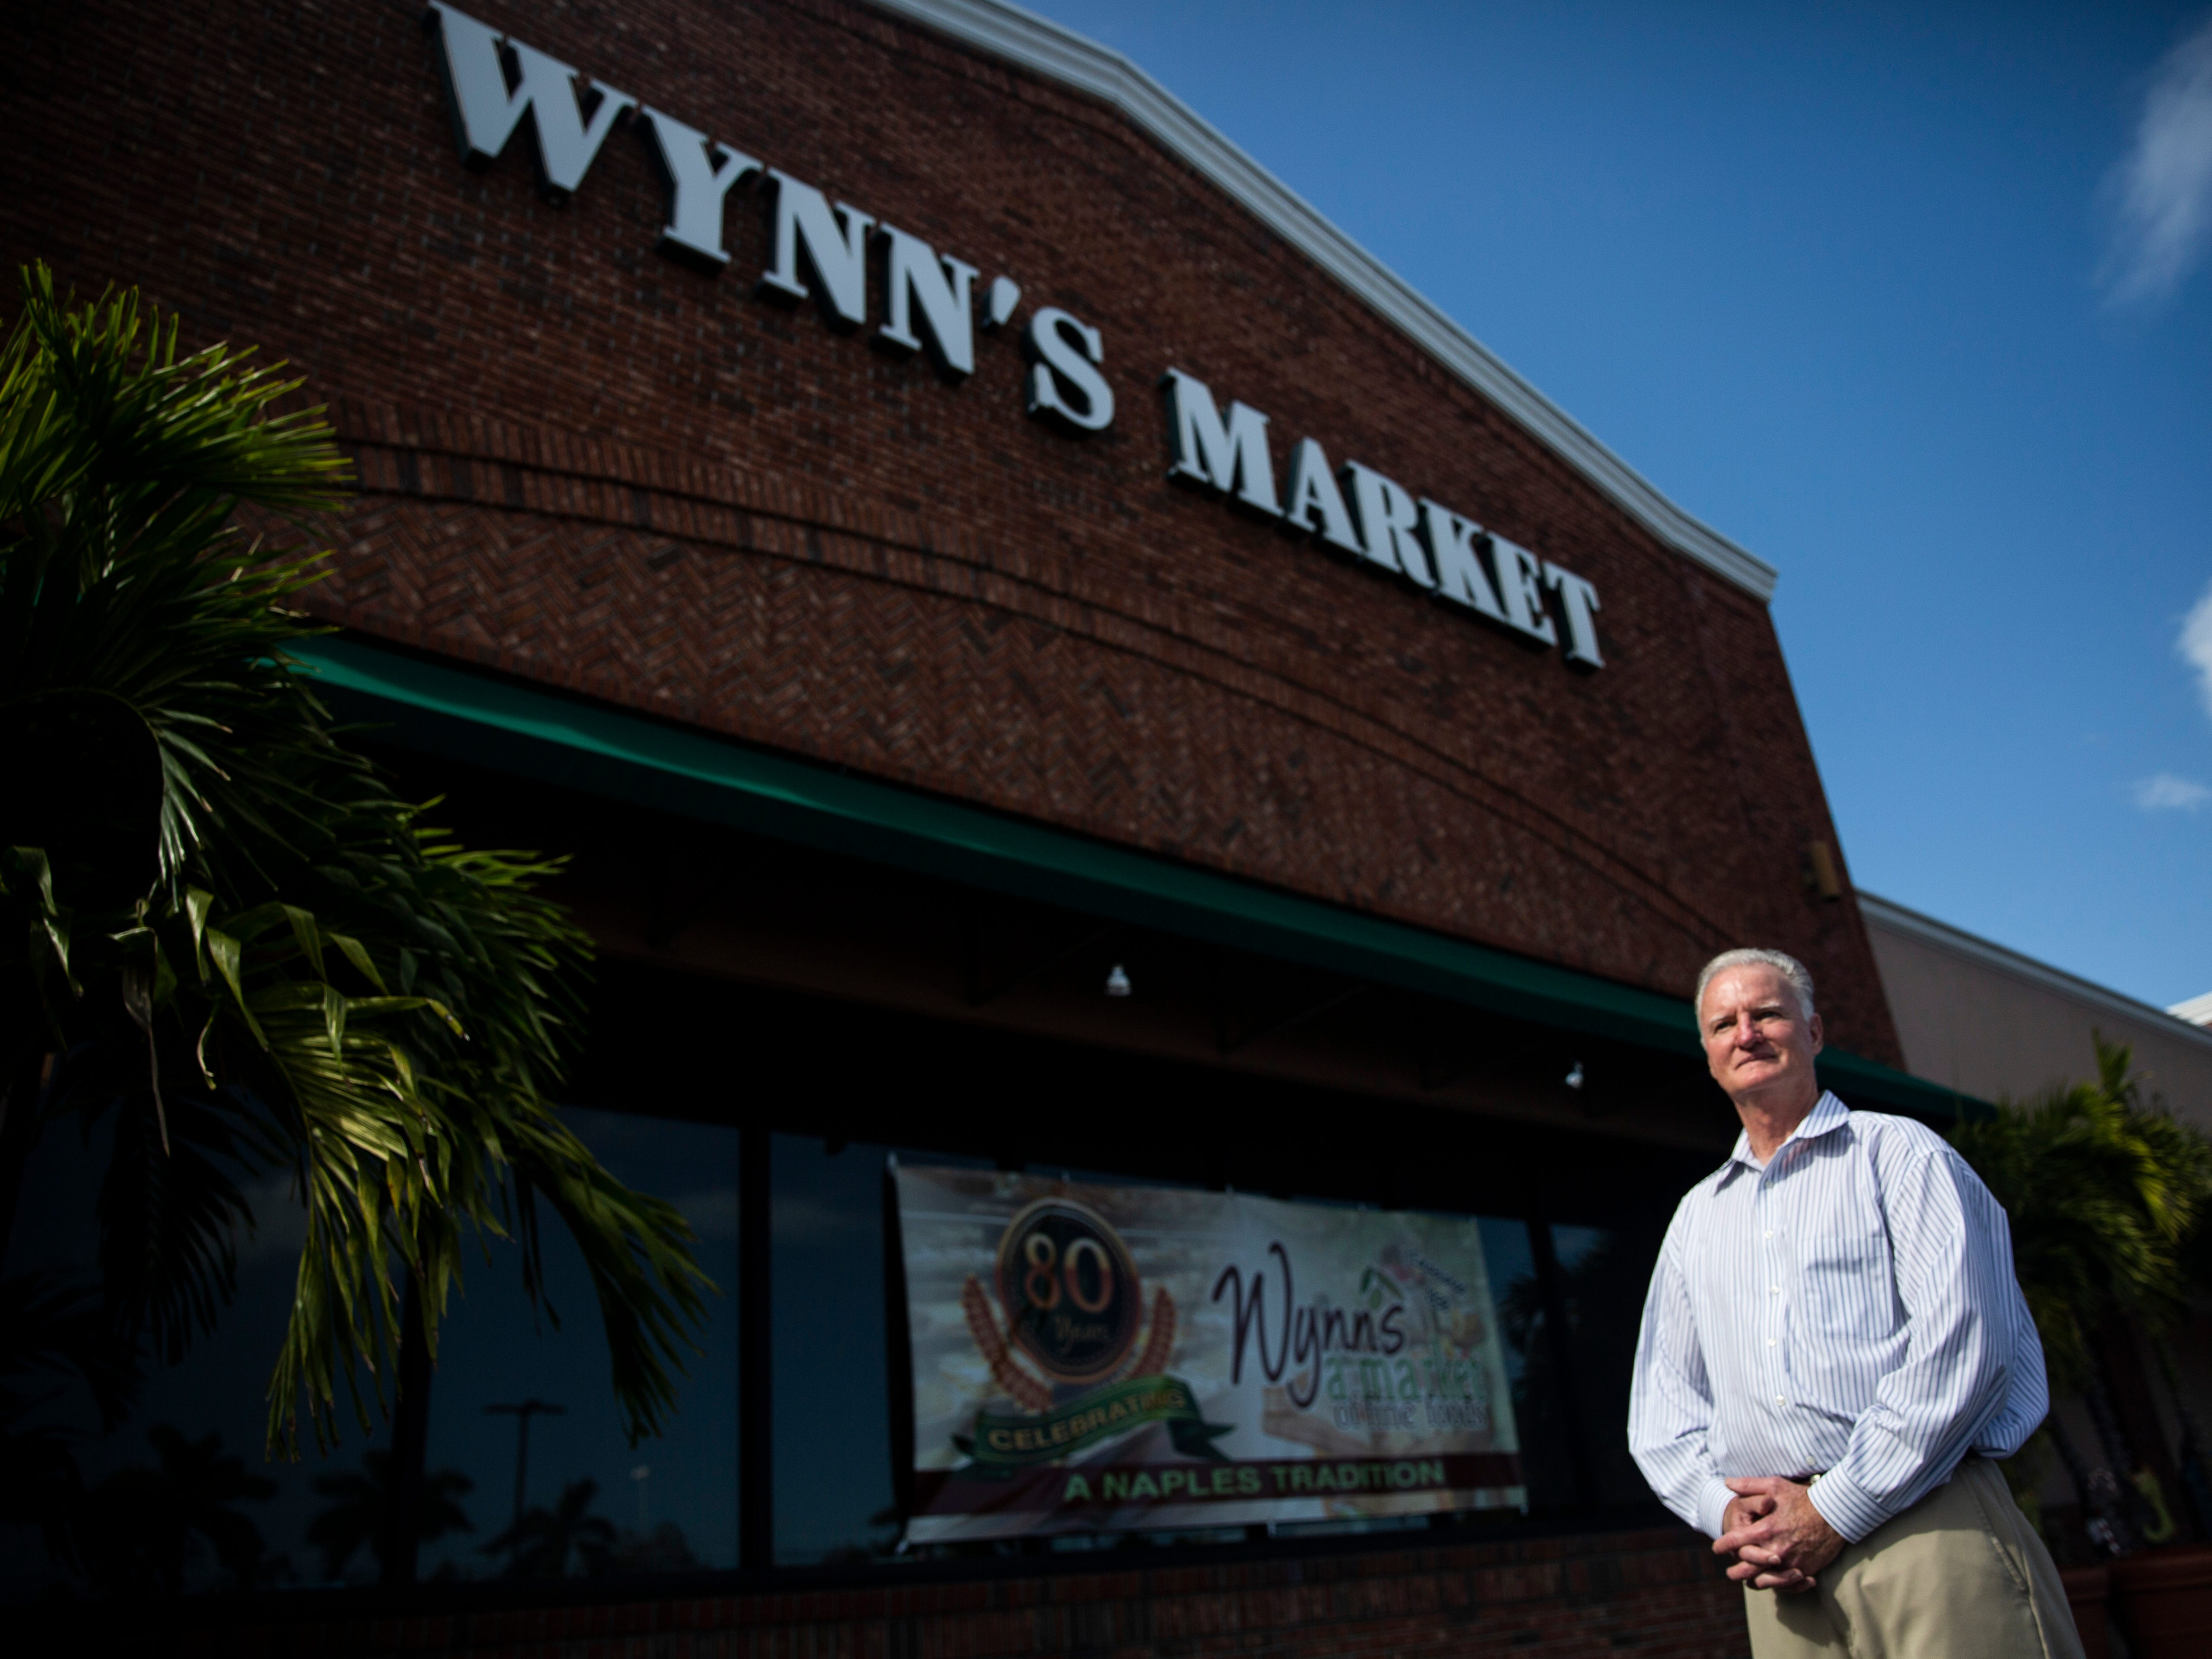 Tim Wynn stands outside Wynn's Market, which is celebrating its 80th anniversary this year, on Friday, Dec. 21, 2018, in Naples.